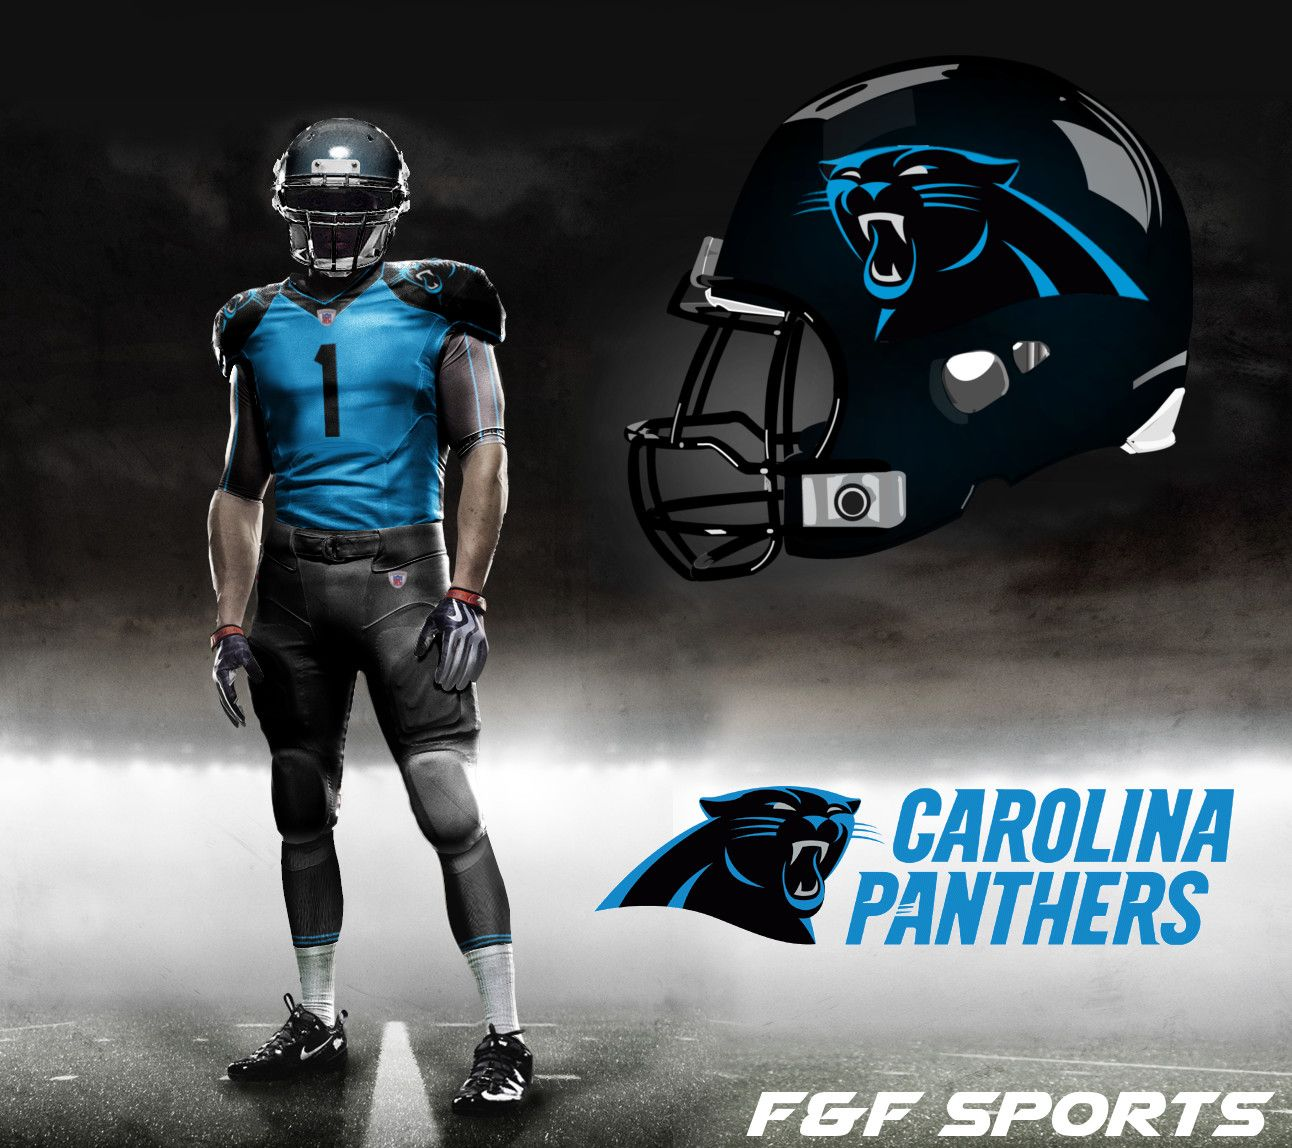 Carolina Panthers Uniform Duck Bank